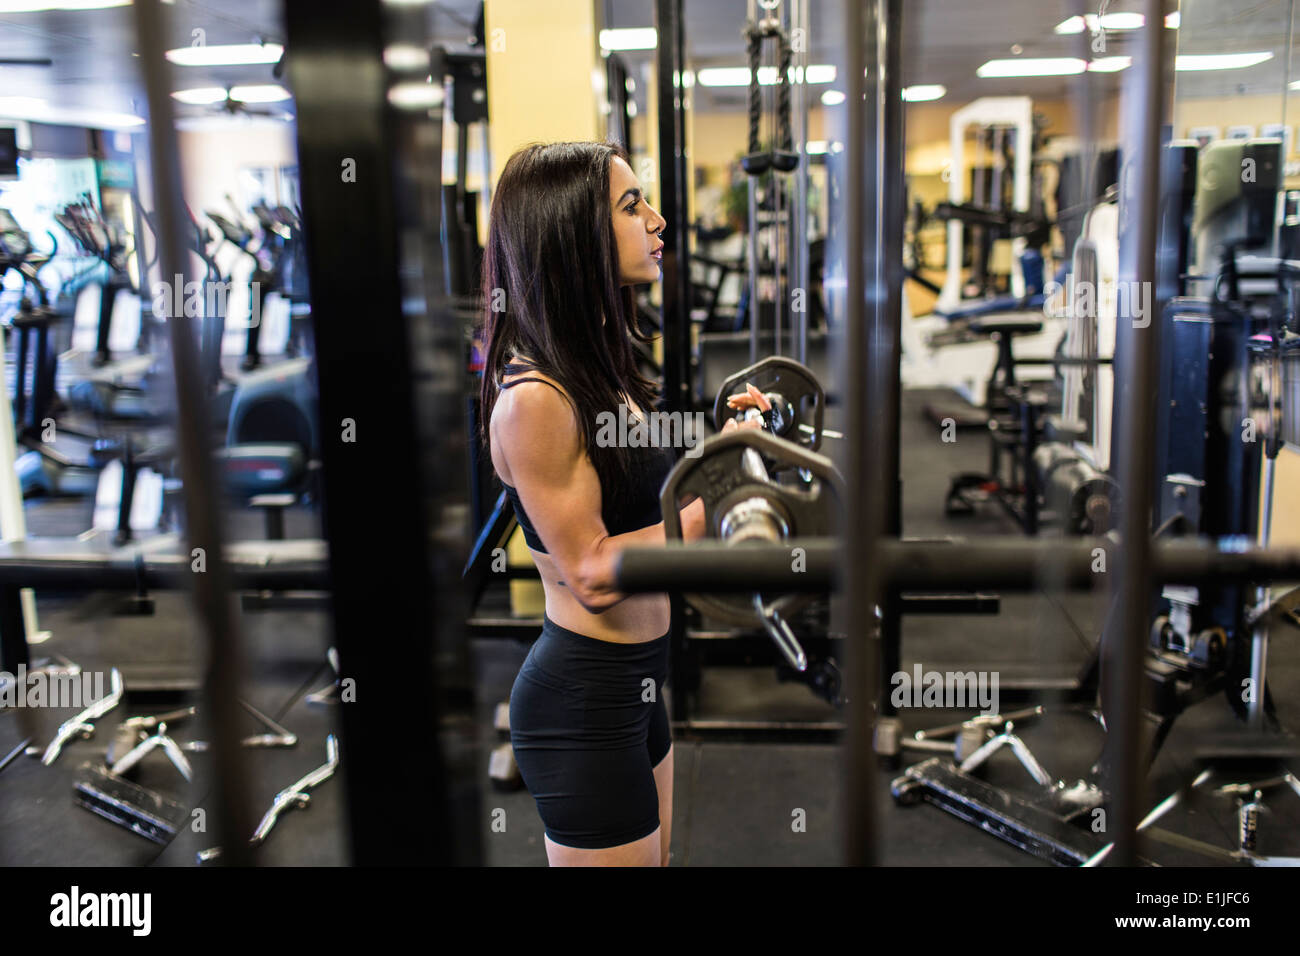 Mid adult woman weightlifting barbell in gym Stock Photo